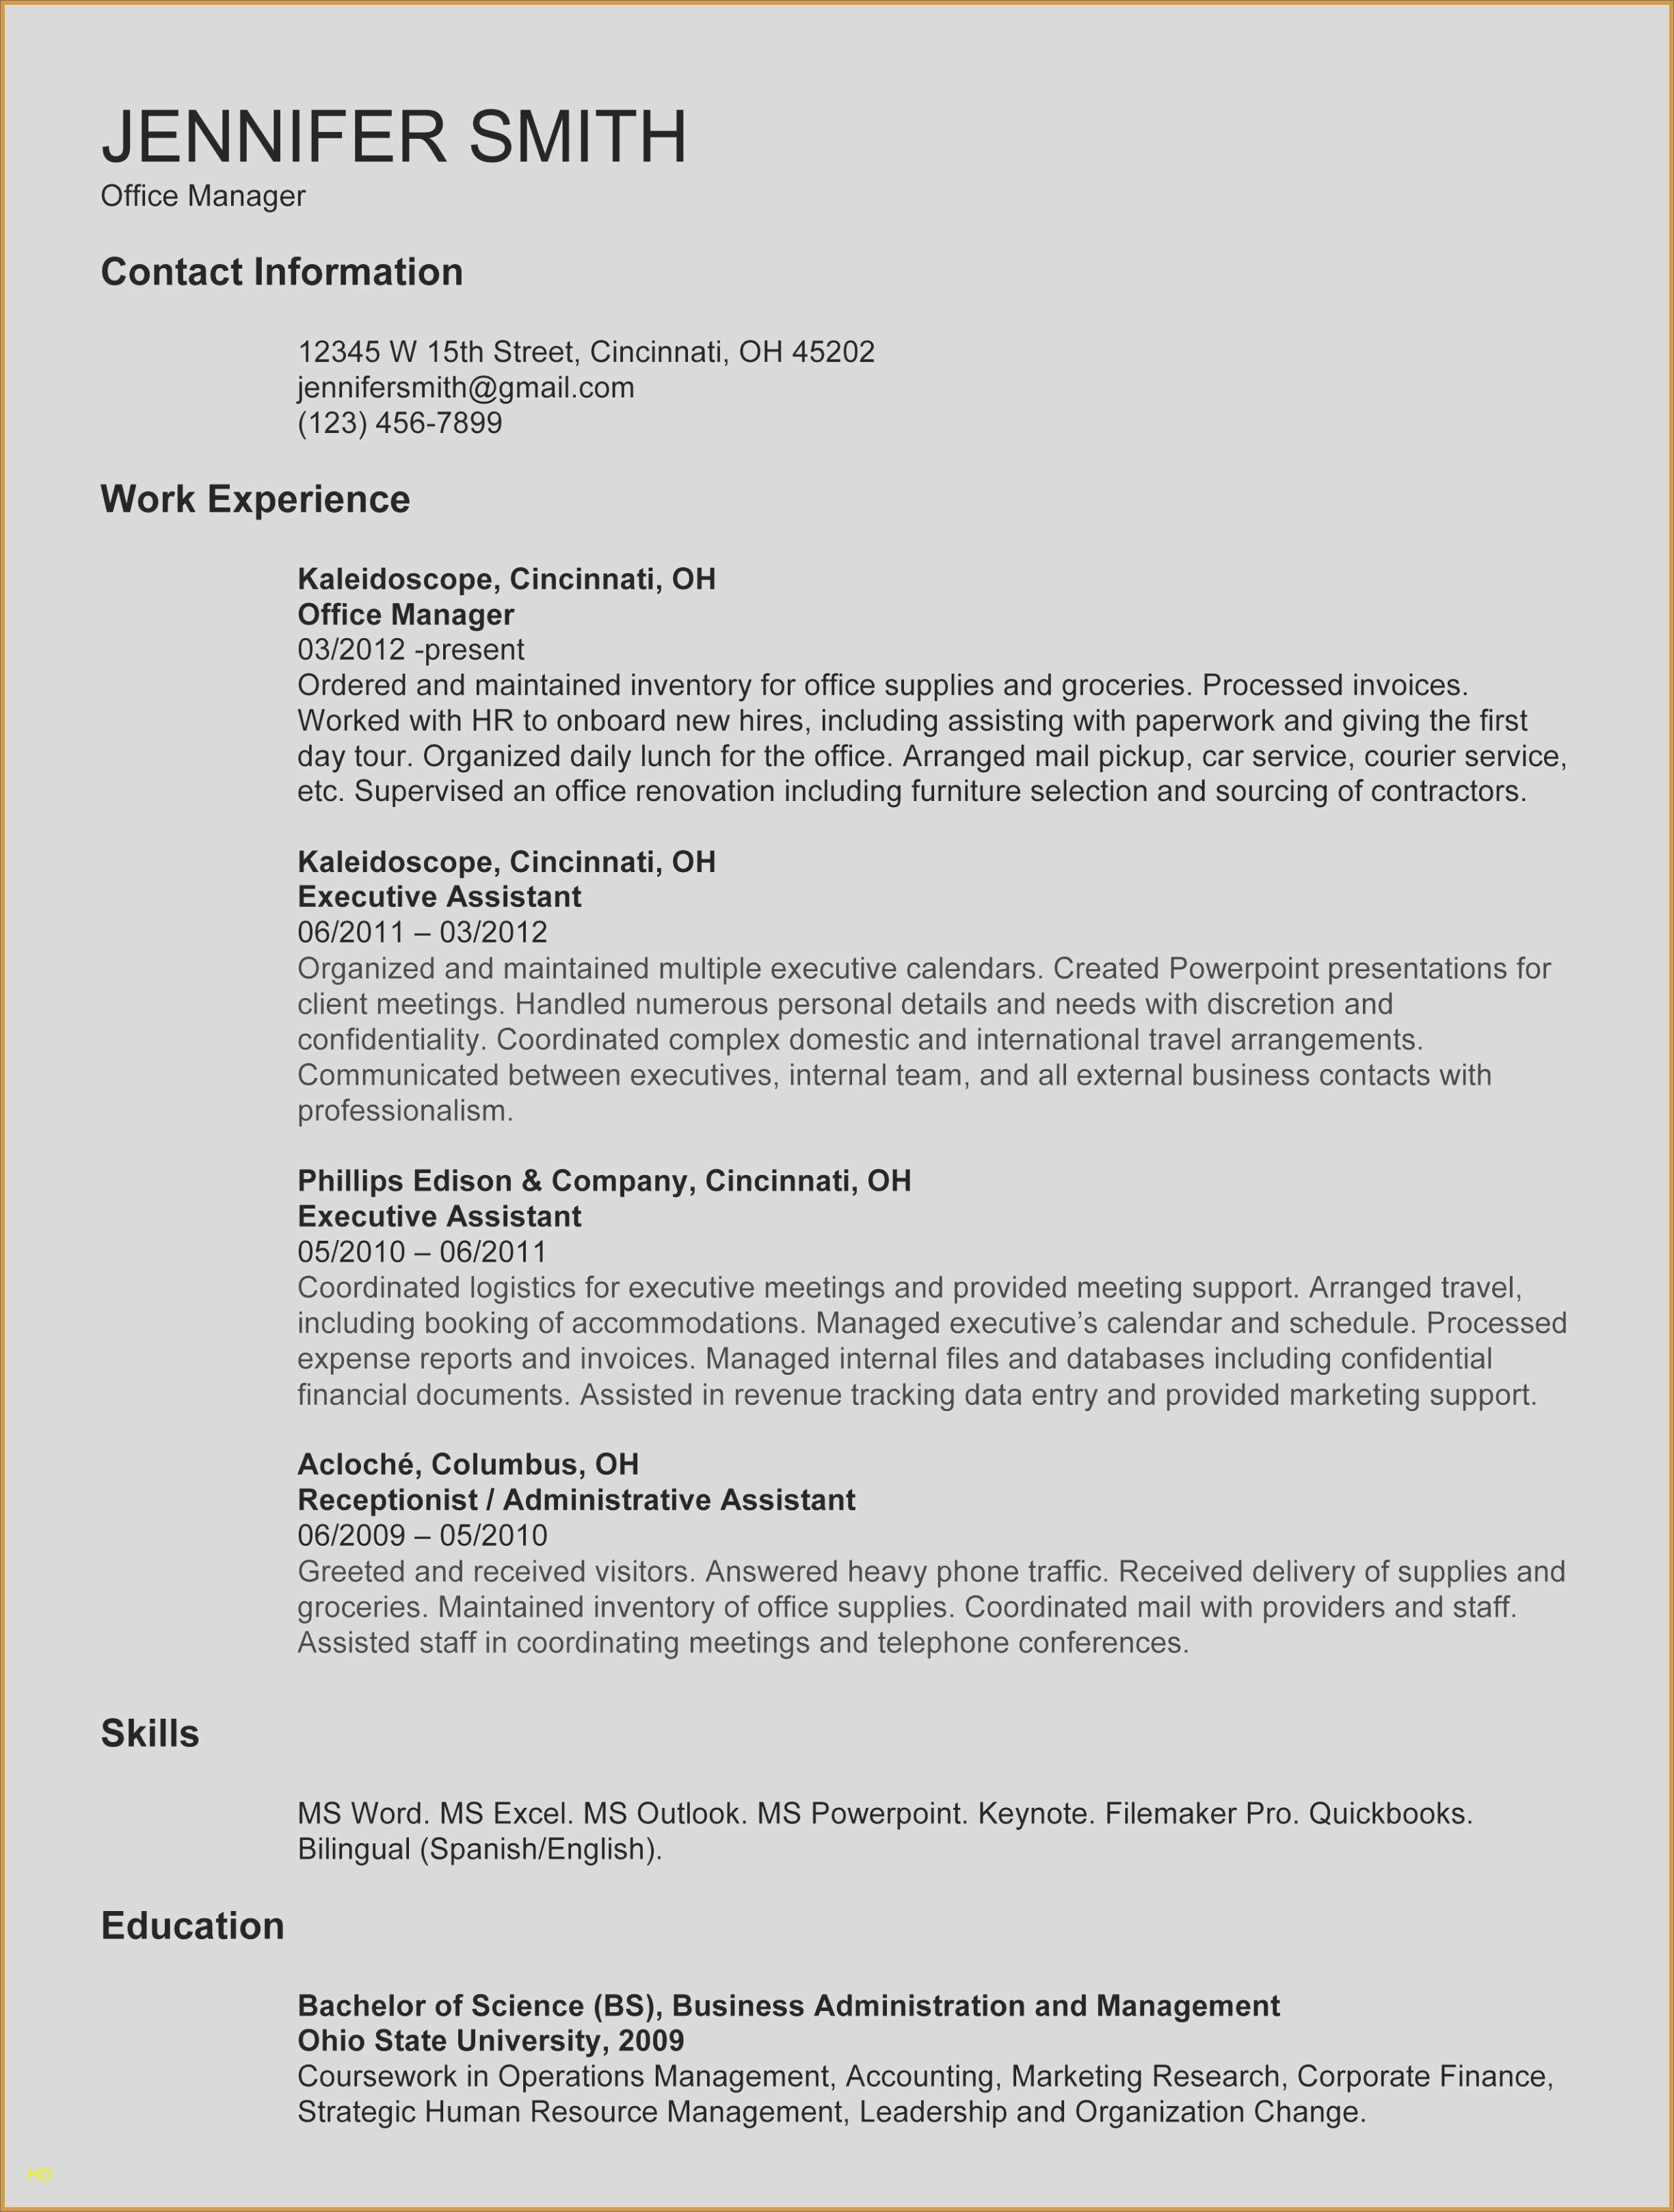 Fedex Resume Paper - Fedex Resume Paper Unique where to Buy Resume Paper Luxury Bsn